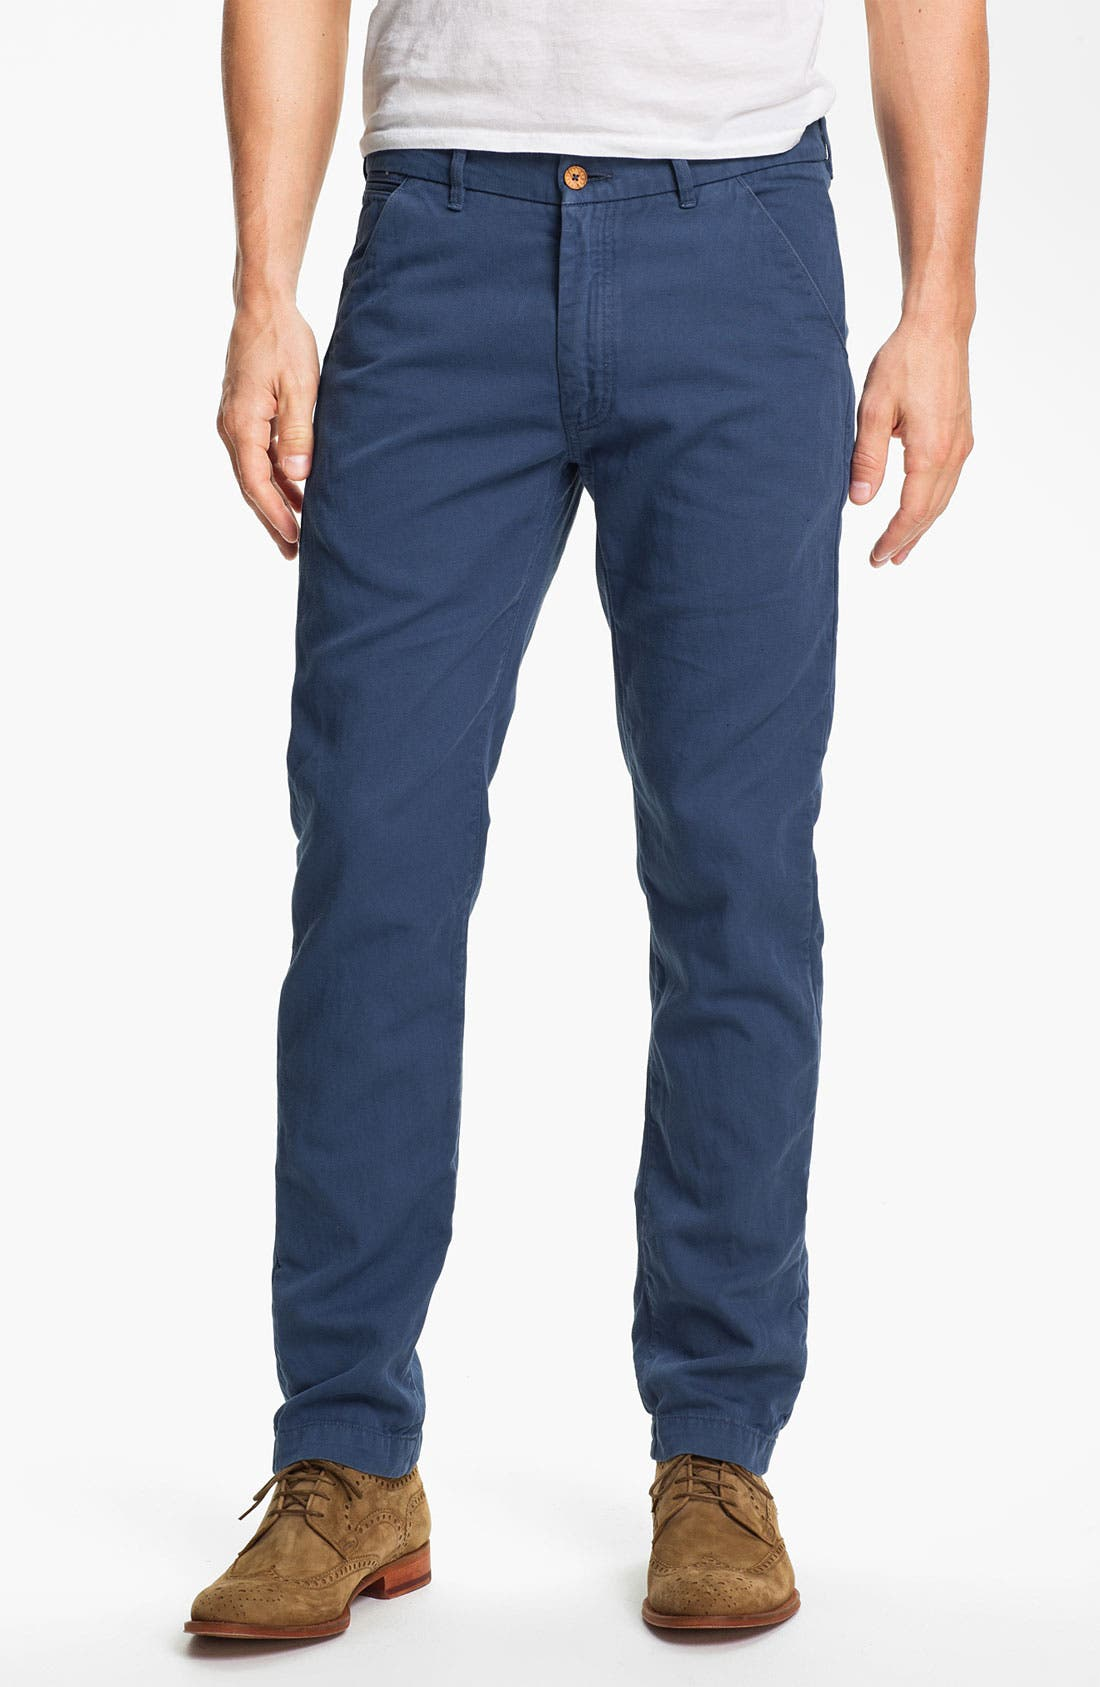 Alternate Image 1 Selected - Levi's® Made & Crafted™ 'Spoke' Cotton & Linen Chinos